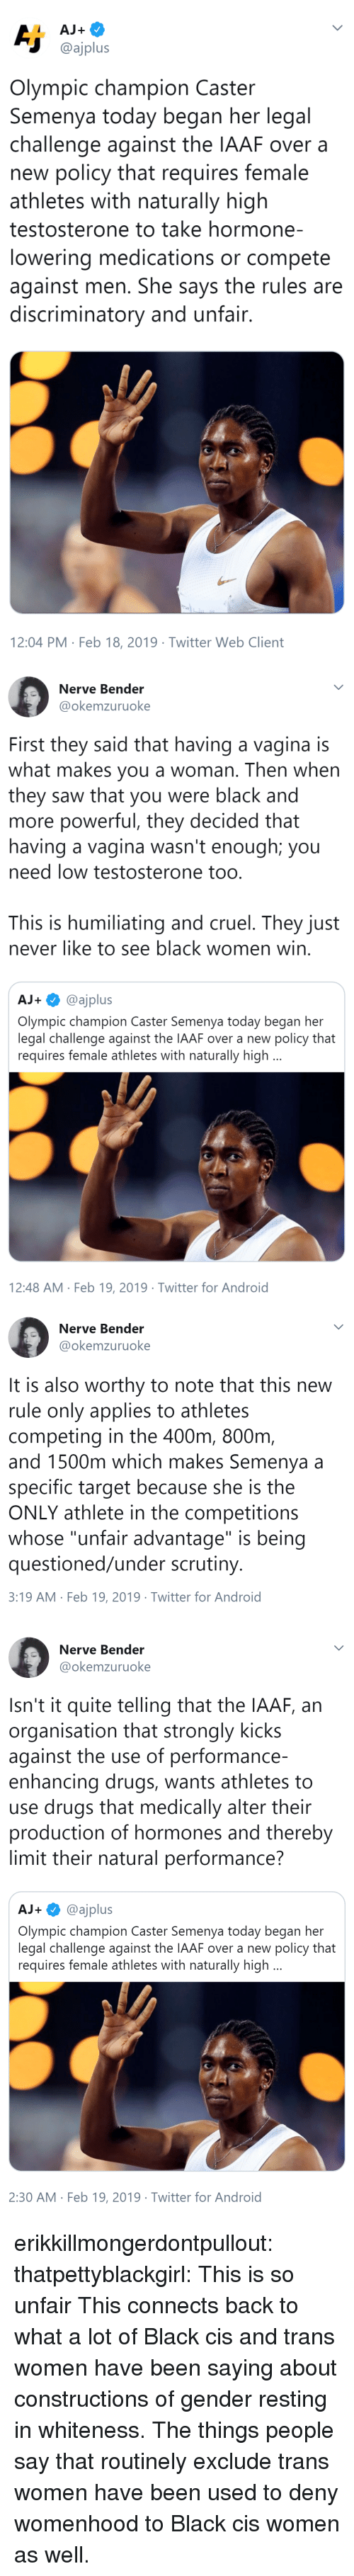 """Android, Drugs, and Saw: @ajplus  Olympic champion Caster  Semenya today began her legal  challenge against the IAAF over a  new policy that requires female  athletes with naturally high  testosterone to take hormone-  lowering medications or compete  against men. She says the rules are  discriminatory and unfair  12:04 PM Feb 18, 2019 Twitter Web Client   Nerve Bender  @okemzuruoke  First they said that having a vagina is  what makes you a woman. Then when  they saw that you were black and  more powerful, they decided that  having a vagina wasn't enough; you  need low testosterone too  This is humiliating and cruel. They just  never like to see black women win  AJ+@ajplus  Olympic champion Caster Semenya today began her  legal challenge against the IAAF over a new policy that  requires female athletes with naturally high  12:48 AM Feb 19, 2019 Twitter for Android   Nerve Bender  @okemzuruoke  It is also worthy to note that this new  rule only applies to athletes  competing in the 400m, 800nm  and 1500m which makes Semenya a  specific target because she is the  ONLY athlete in the competitions  whose """"unfair advantage"""" is being  questioned/under scrutiny  3:19 AM Feb 19, 2019 Twitter for Android   Nerve Bender  @okemzuruoke  Isn't it quite telling that the IAAF, an  organisation that strongly kicks  against the use of performance-  enhancing drugs, wants athletes to  use drugs that medically alter their  production of hormones and thereby  limit their natural performance?  AJ+@ajplus  Olympic champion Caster Semenya today began her  legal challenge against the IAAF over a new policy that  requires female athletes with naturally high  2:30 AM Feb 19, 2019 Twitter for Android erikkillmongerdontpullout: thatpettyblackgirl:  This is so unfair    This connects back to what a lot of Black cis and trans women have been saying about constructions of gender resting in whiteness. The things people say that routinely exclude trans women have been used to deny womenhood to Blac"""